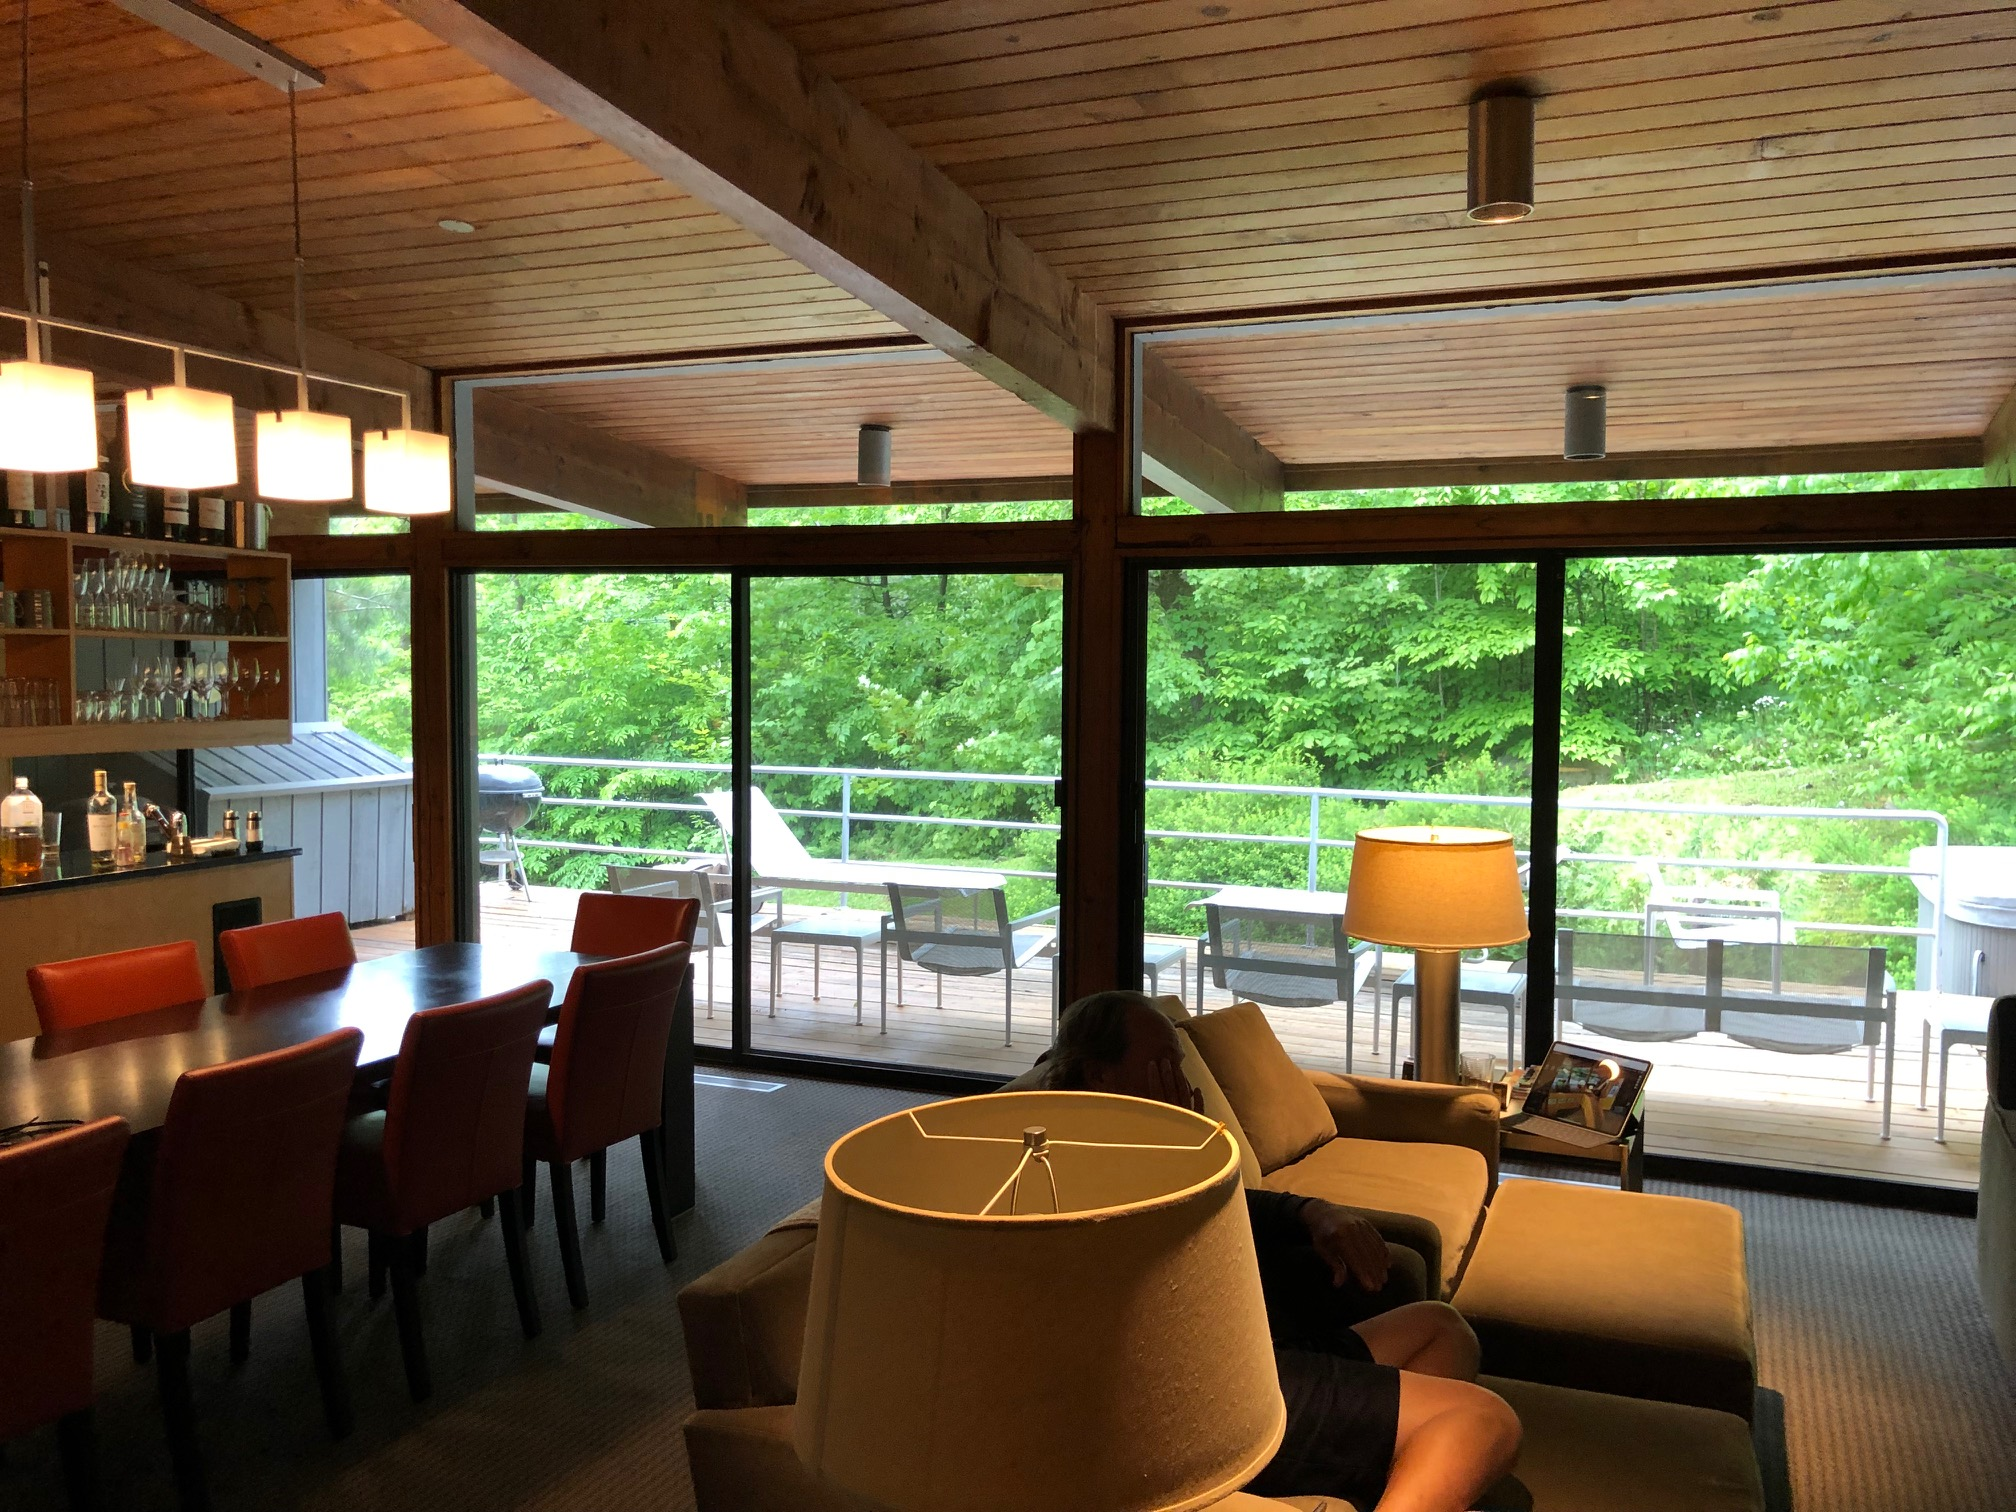 The open plan great room at Granoff Ski House, designed by Eliot Noyes in 1964 .  Image courtesy of Rich Granoff